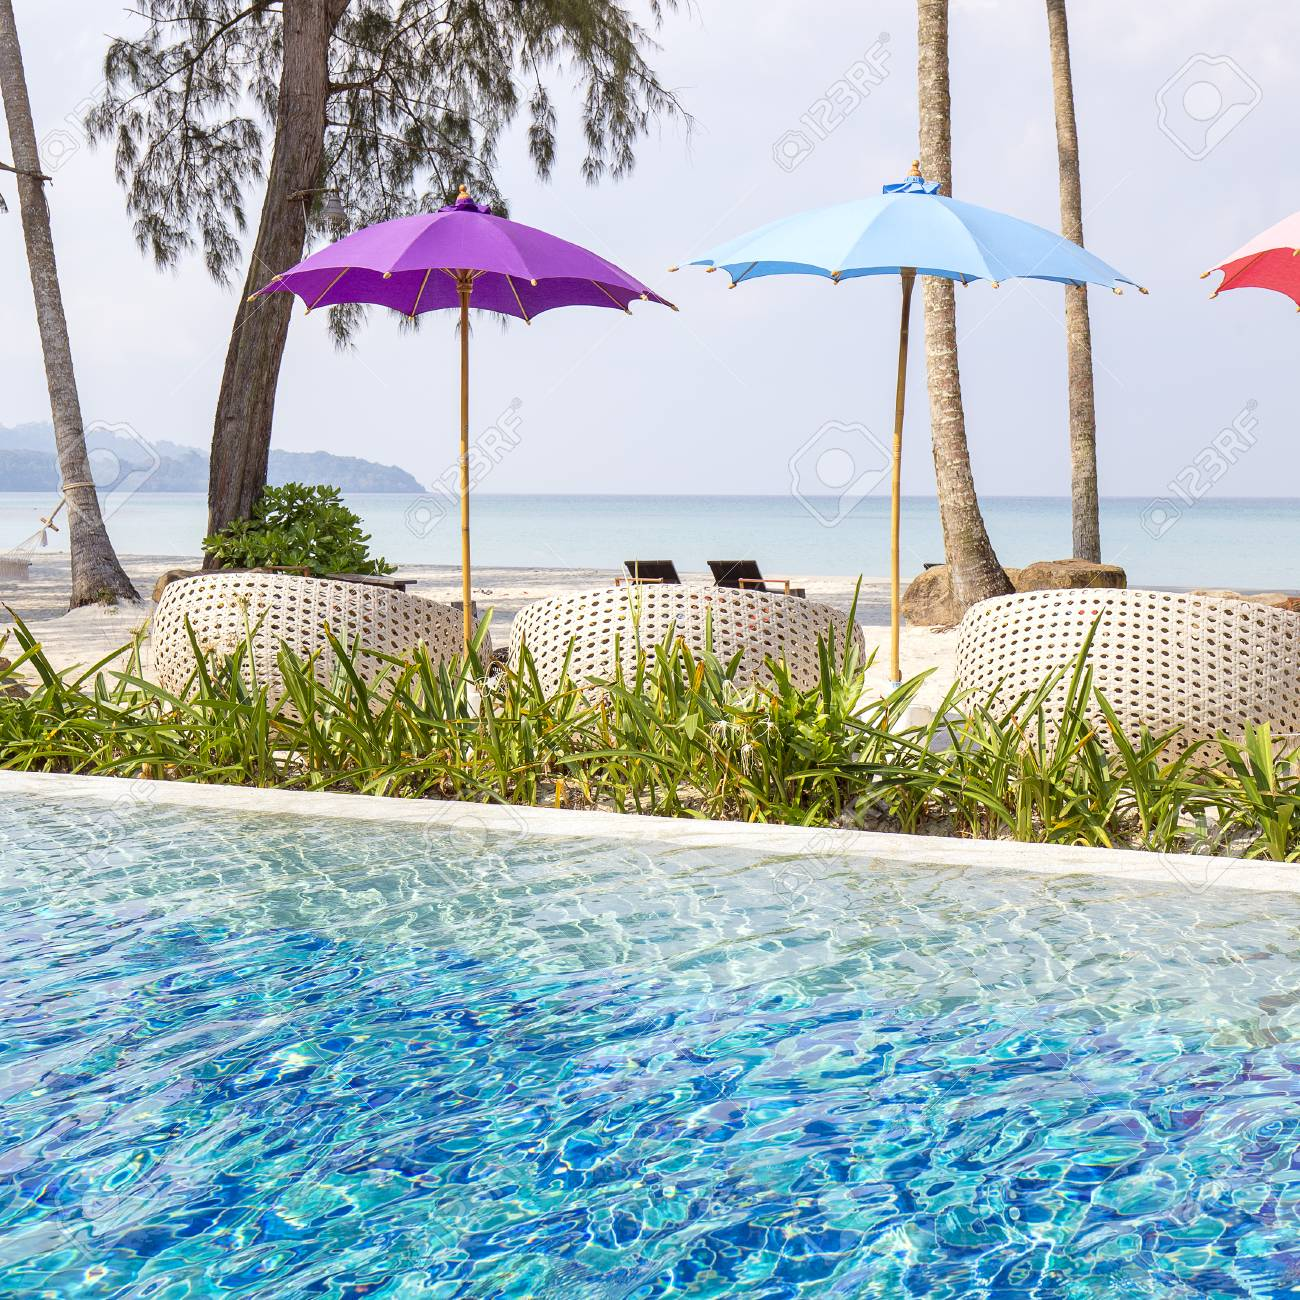 Swimming pool, umbrellas and deck chairs on the sand beach near..